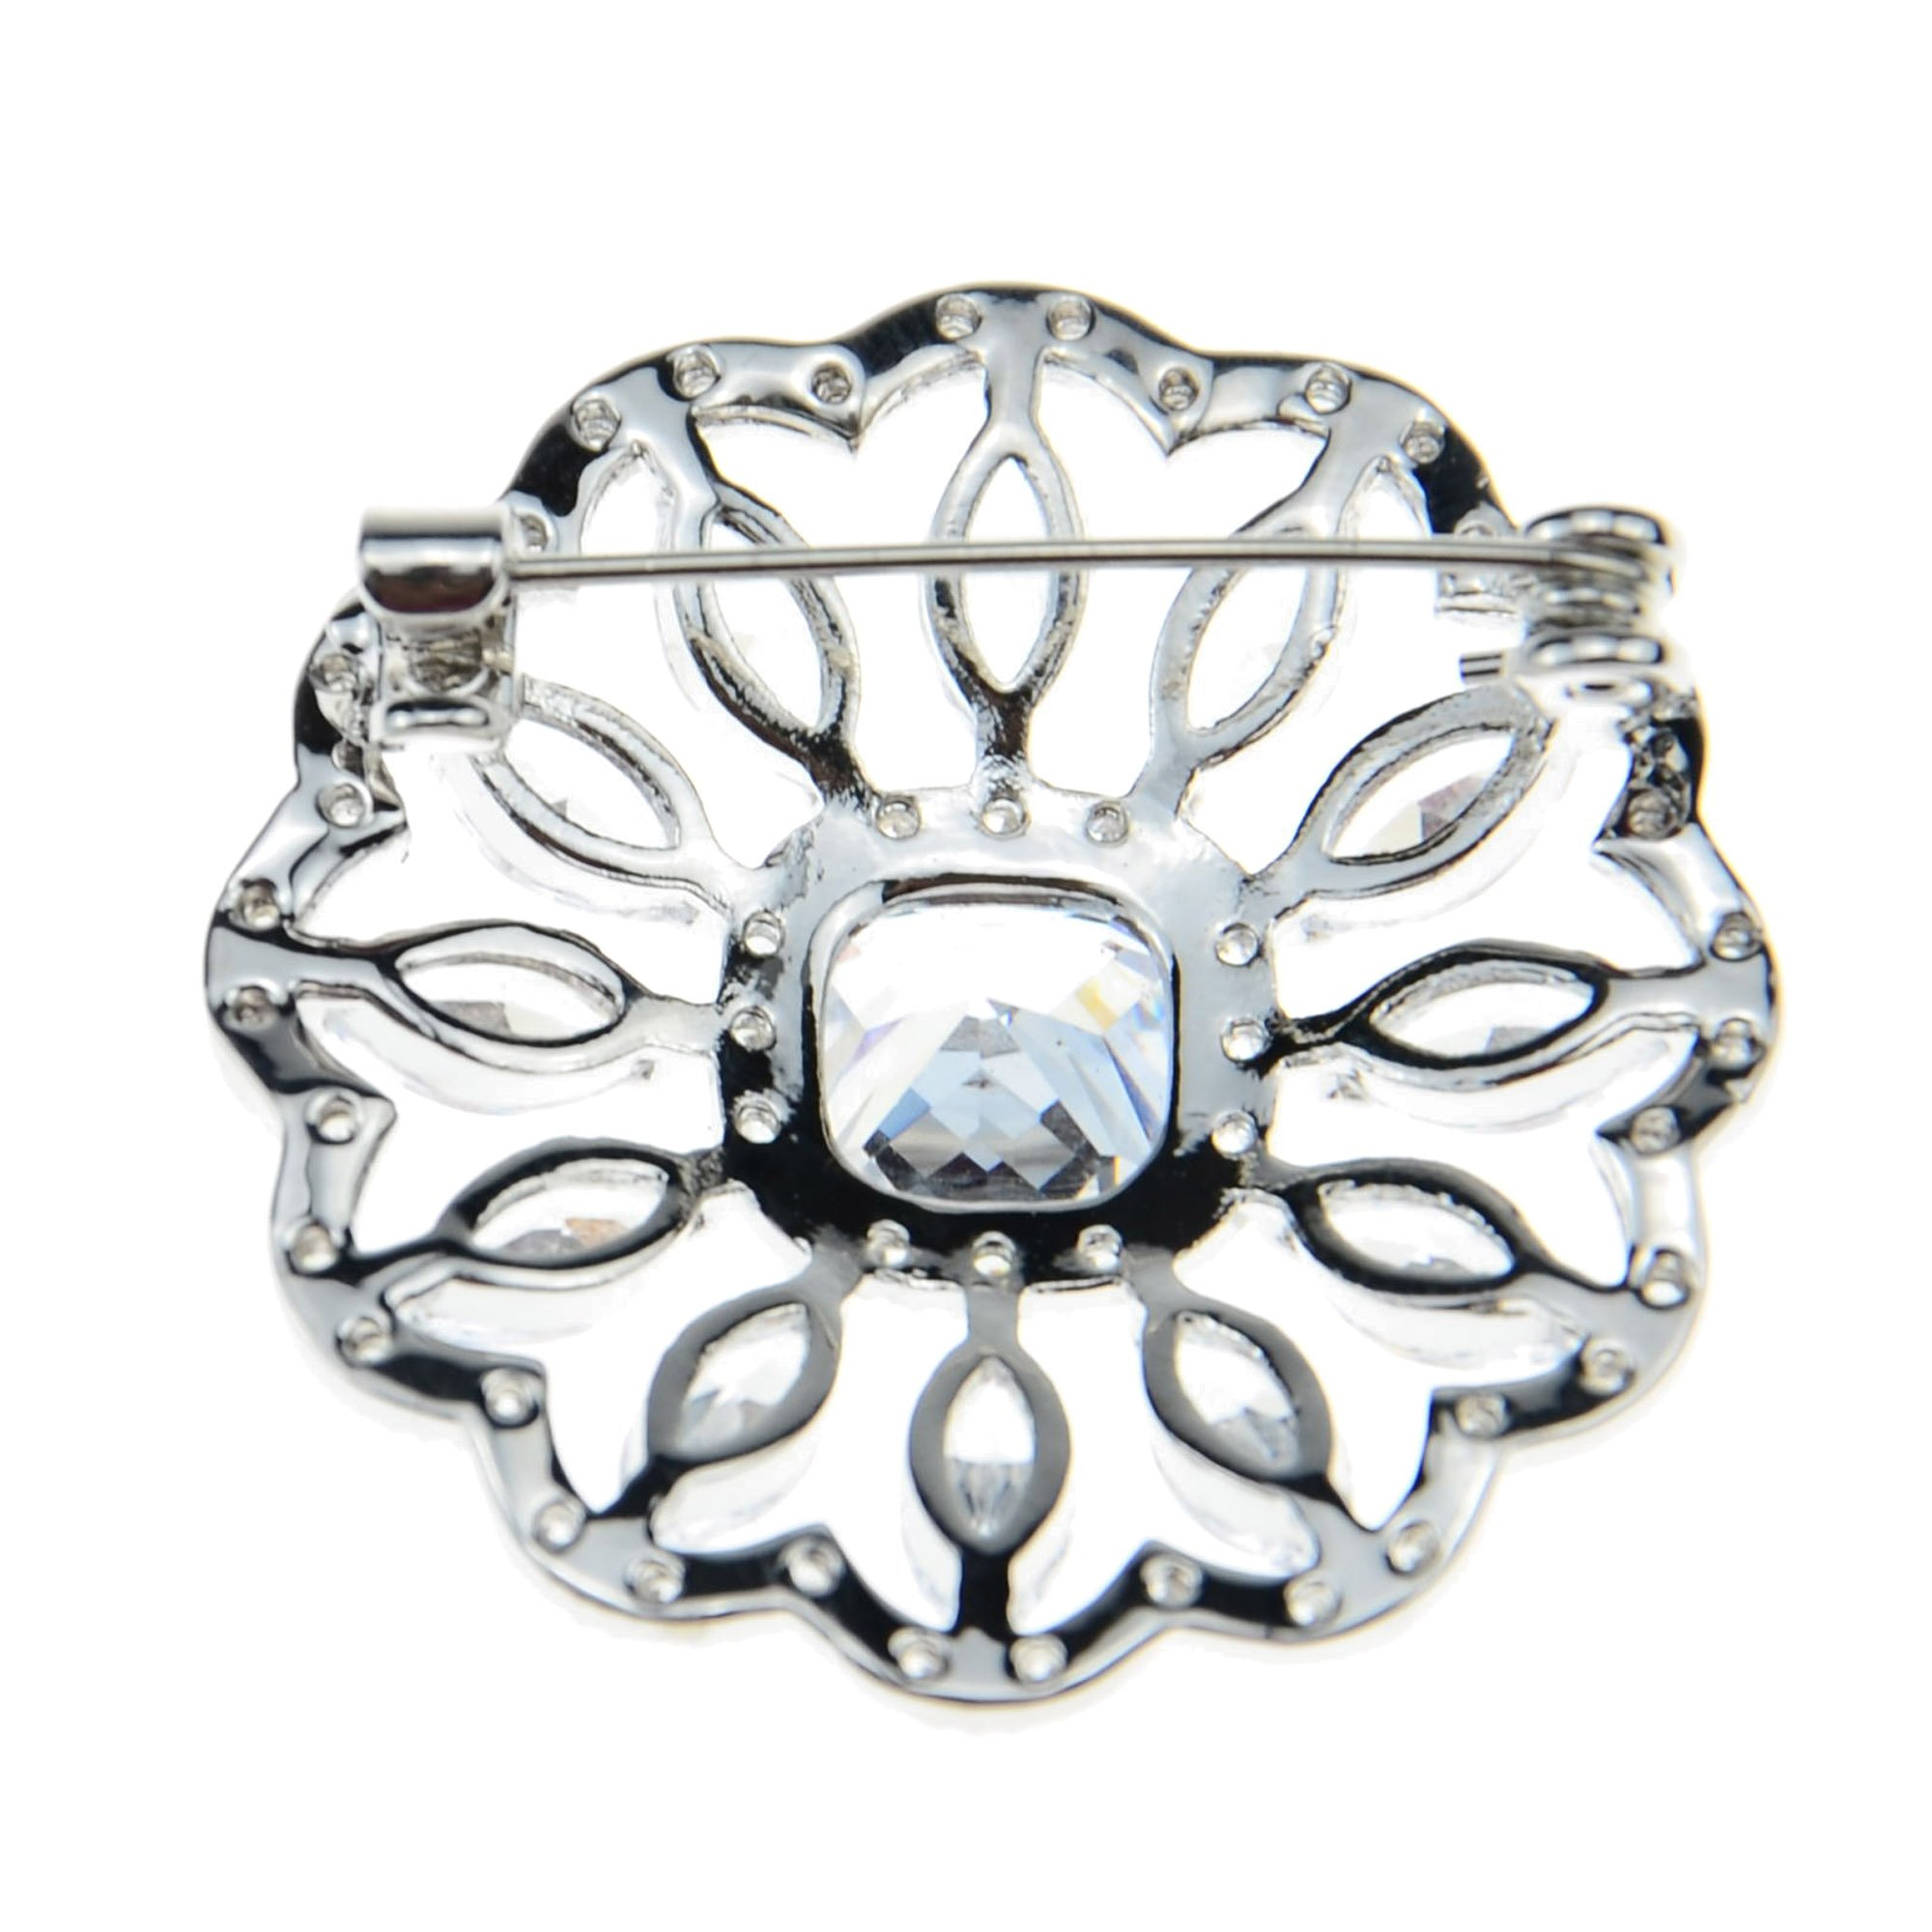 SHINYTIME Rhinestone Brooch Pin Crystal Fashion Clear Pins Women Wedding Brooches Silver Jewelry with Box by SHINYTIME (Image #3)